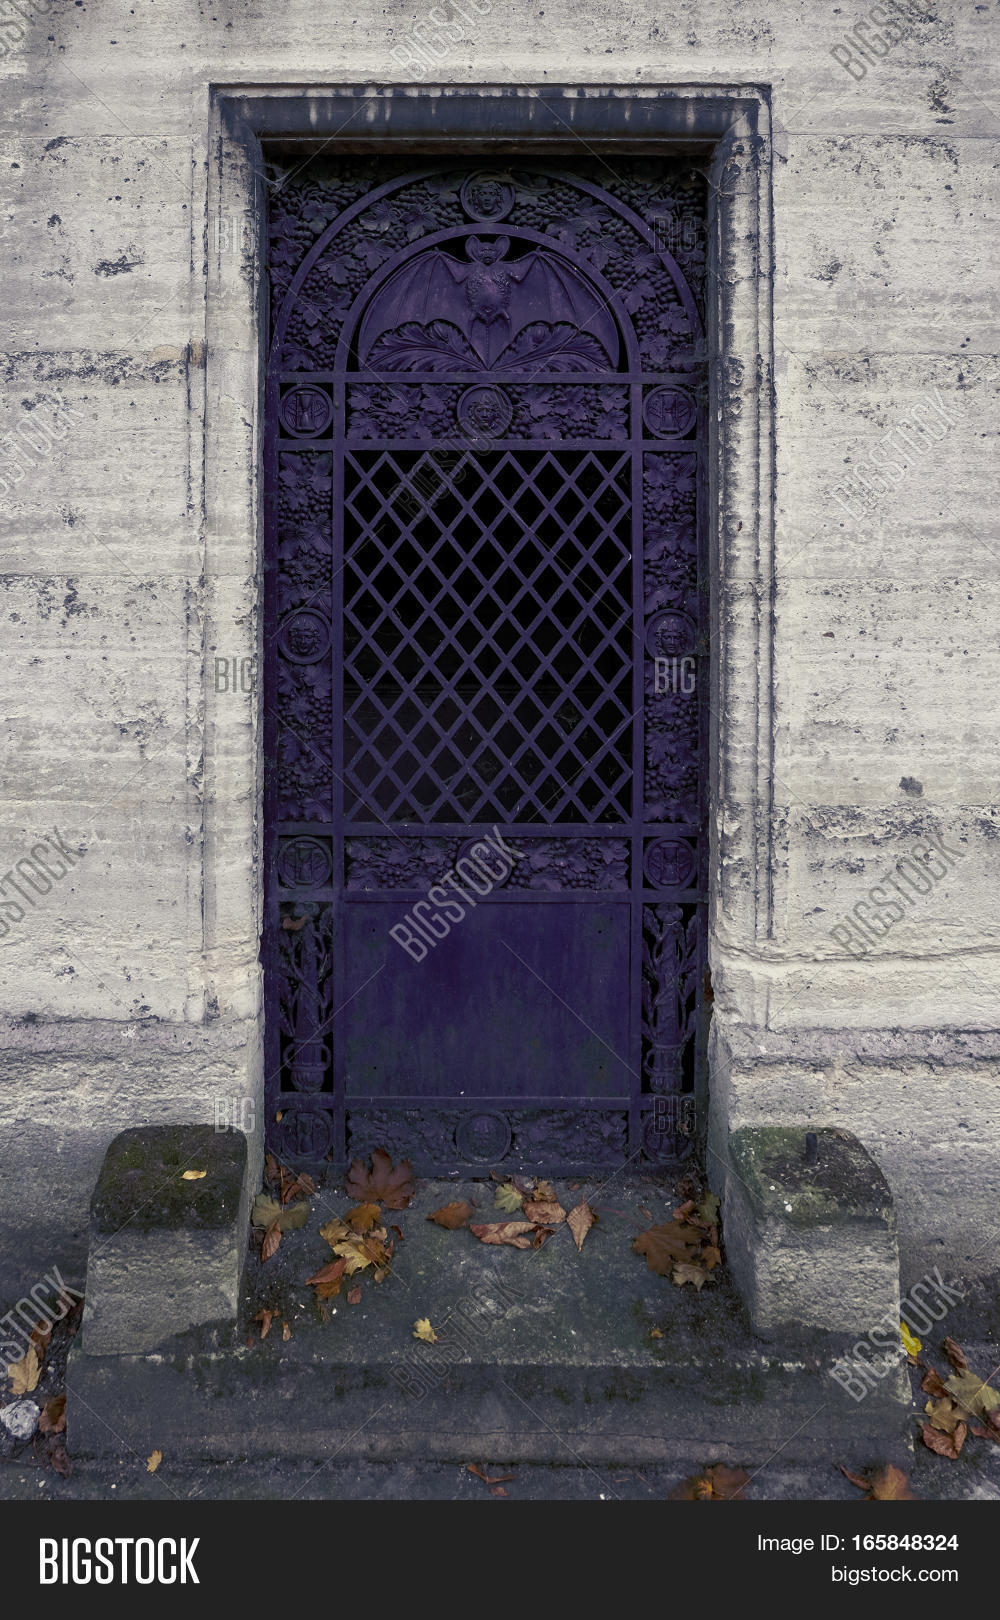 purple iron door with a bat - the closed entrance to an ancient crypt / tomb & Purple Iron Door Bat - Closed Image \u0026 Photo   Bigstock